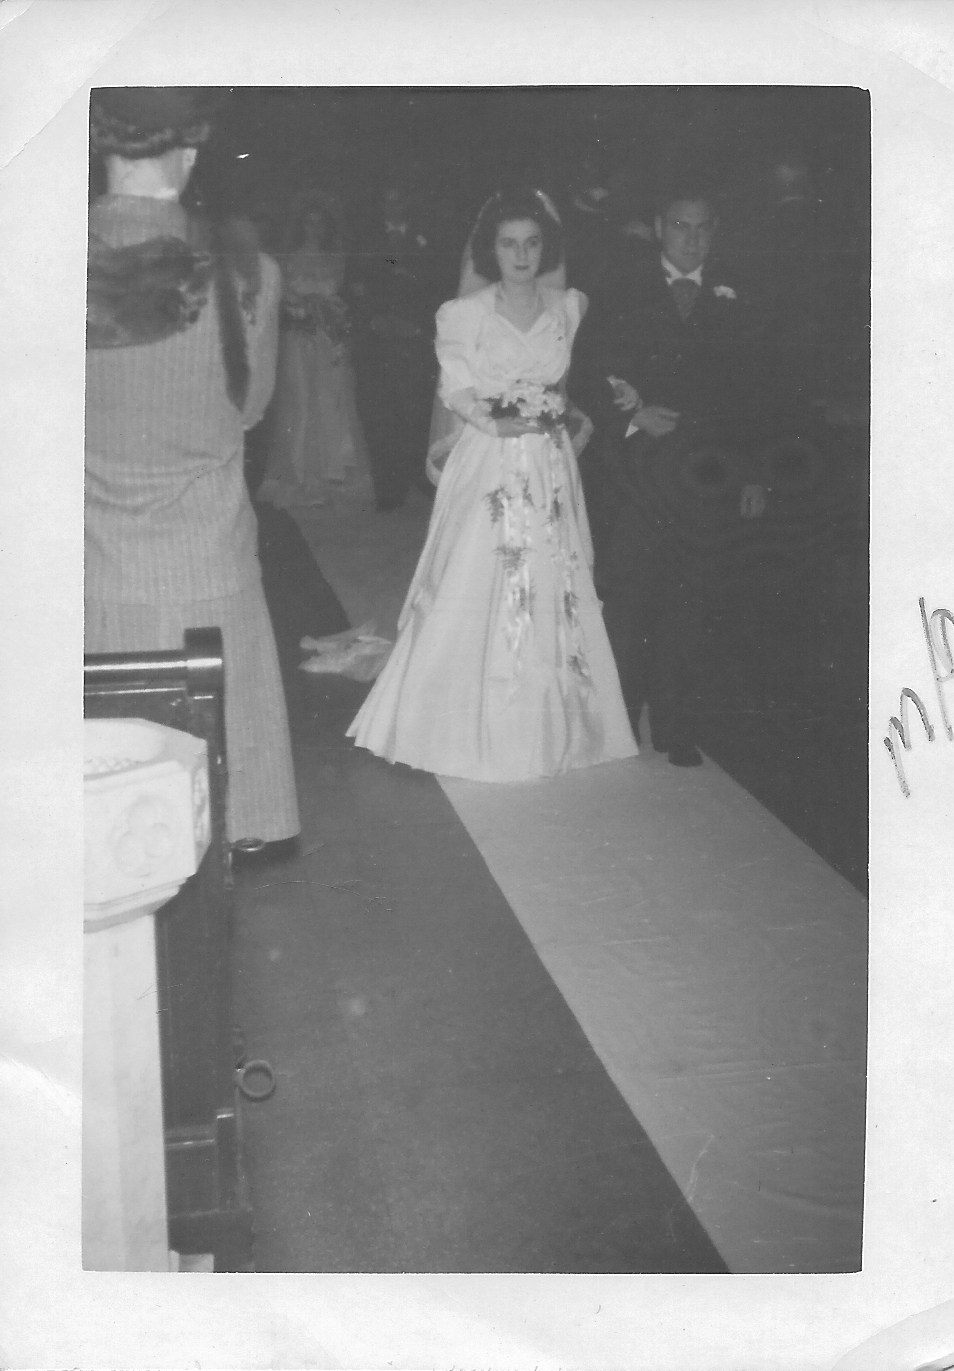 Jack & Betty Kav wedding 05171947